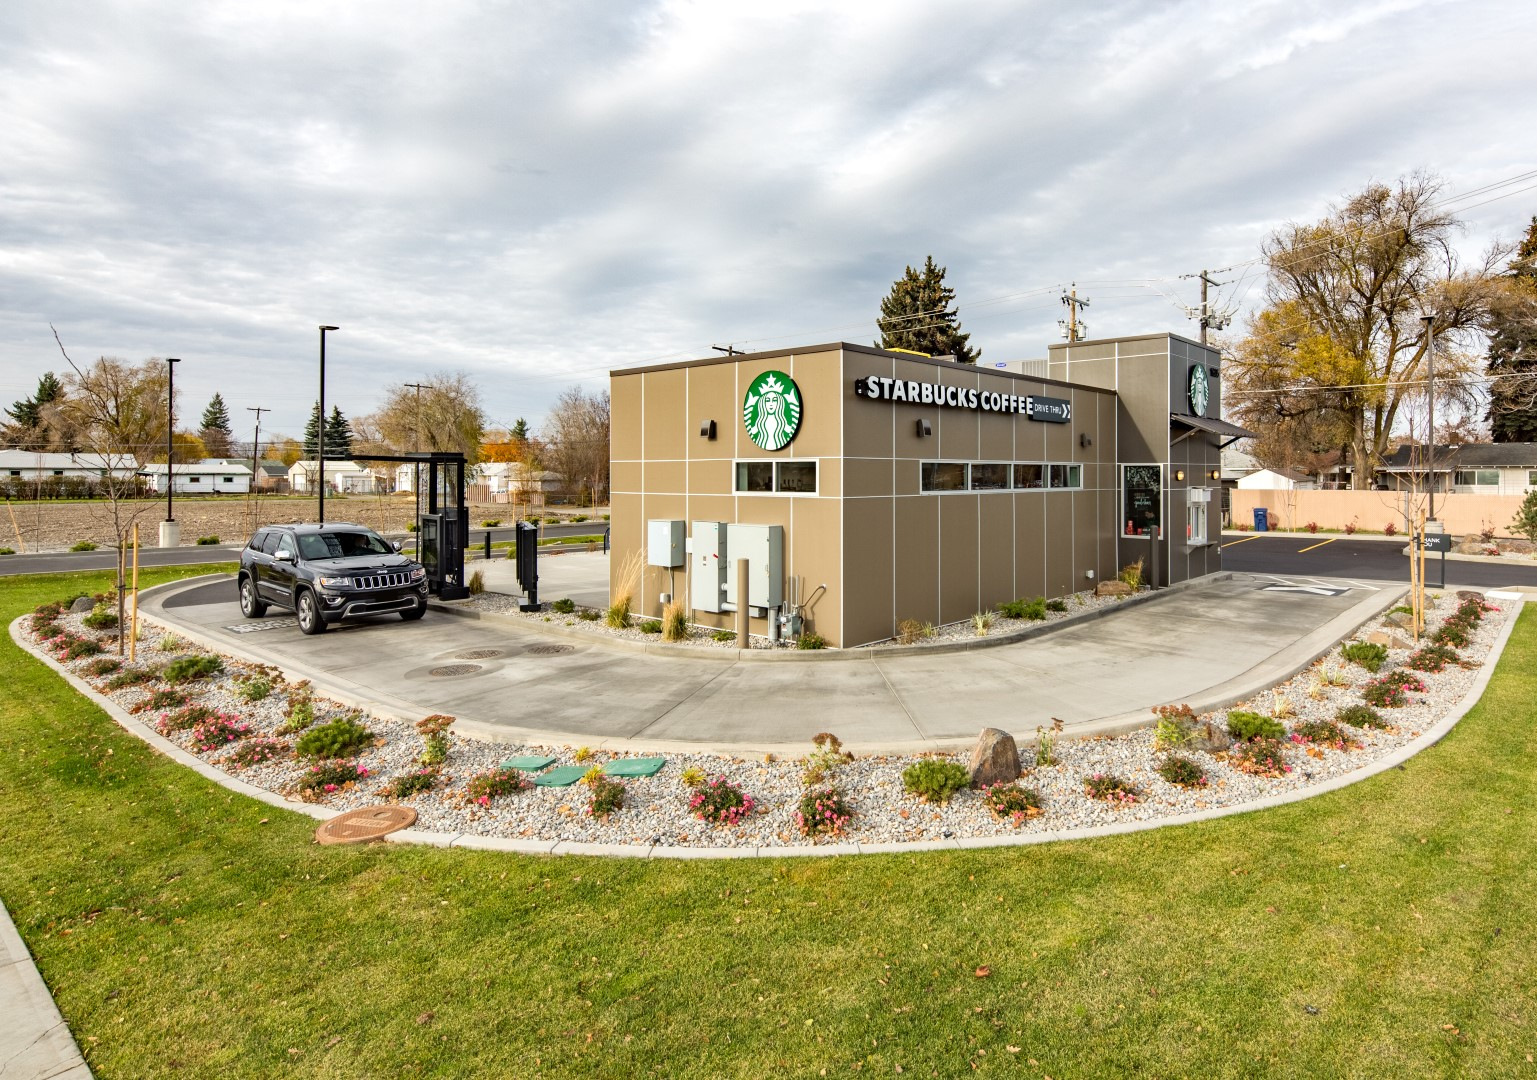 Starbucks on Greene Street, Spokane